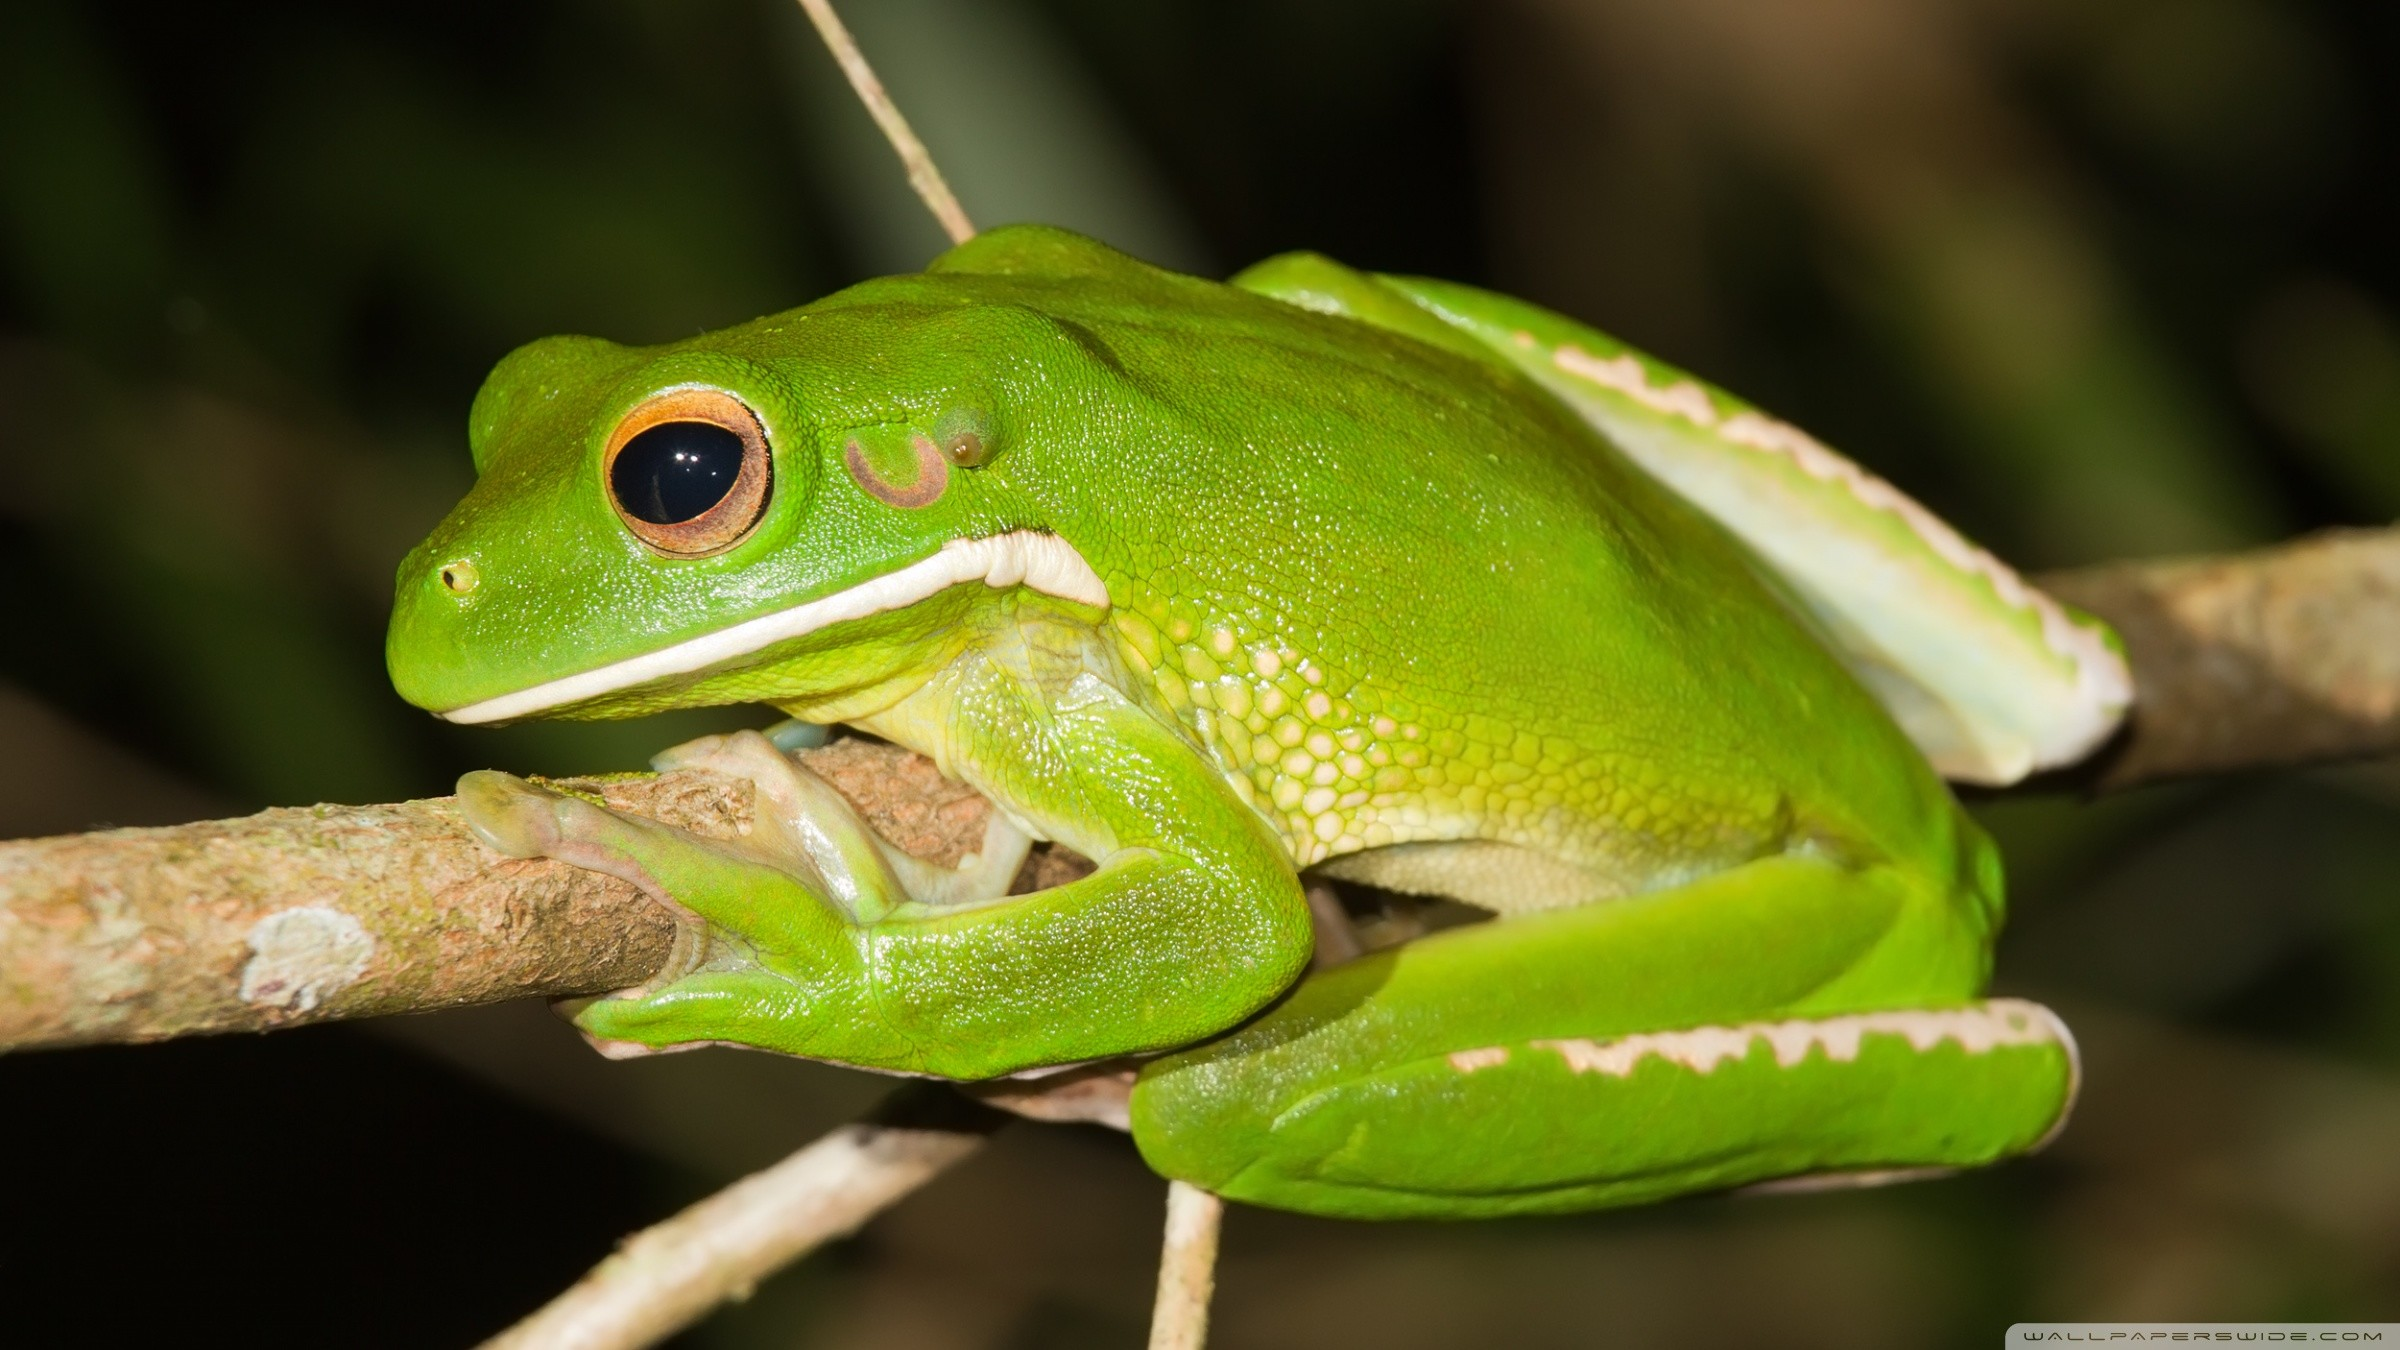 Res: 2400x1350, White-Lipped Tree Frog Wallpapers 1 - 2400 X 1350